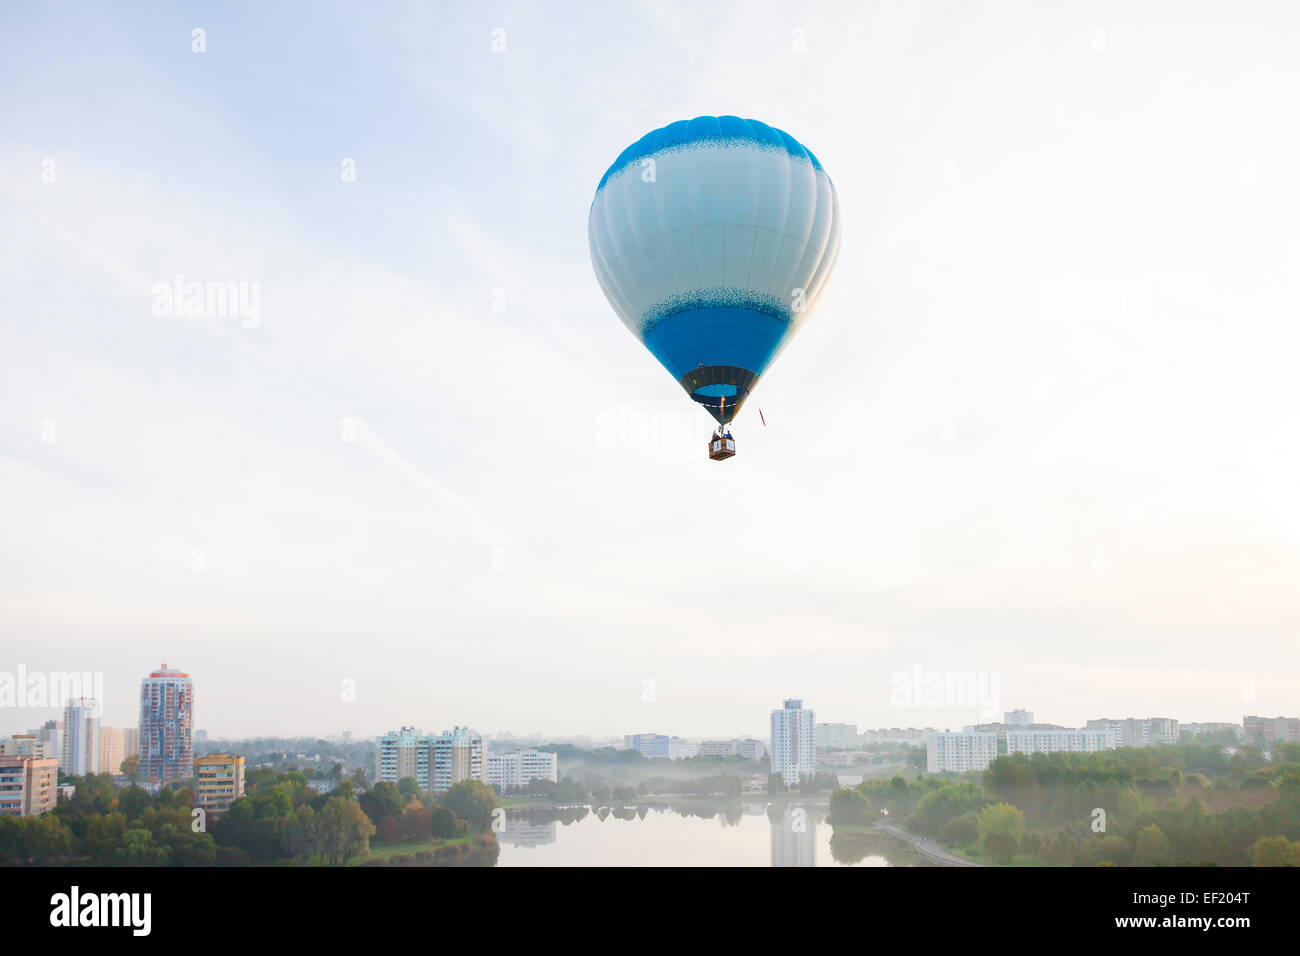 Hot air baloon flying over city - Stock Image